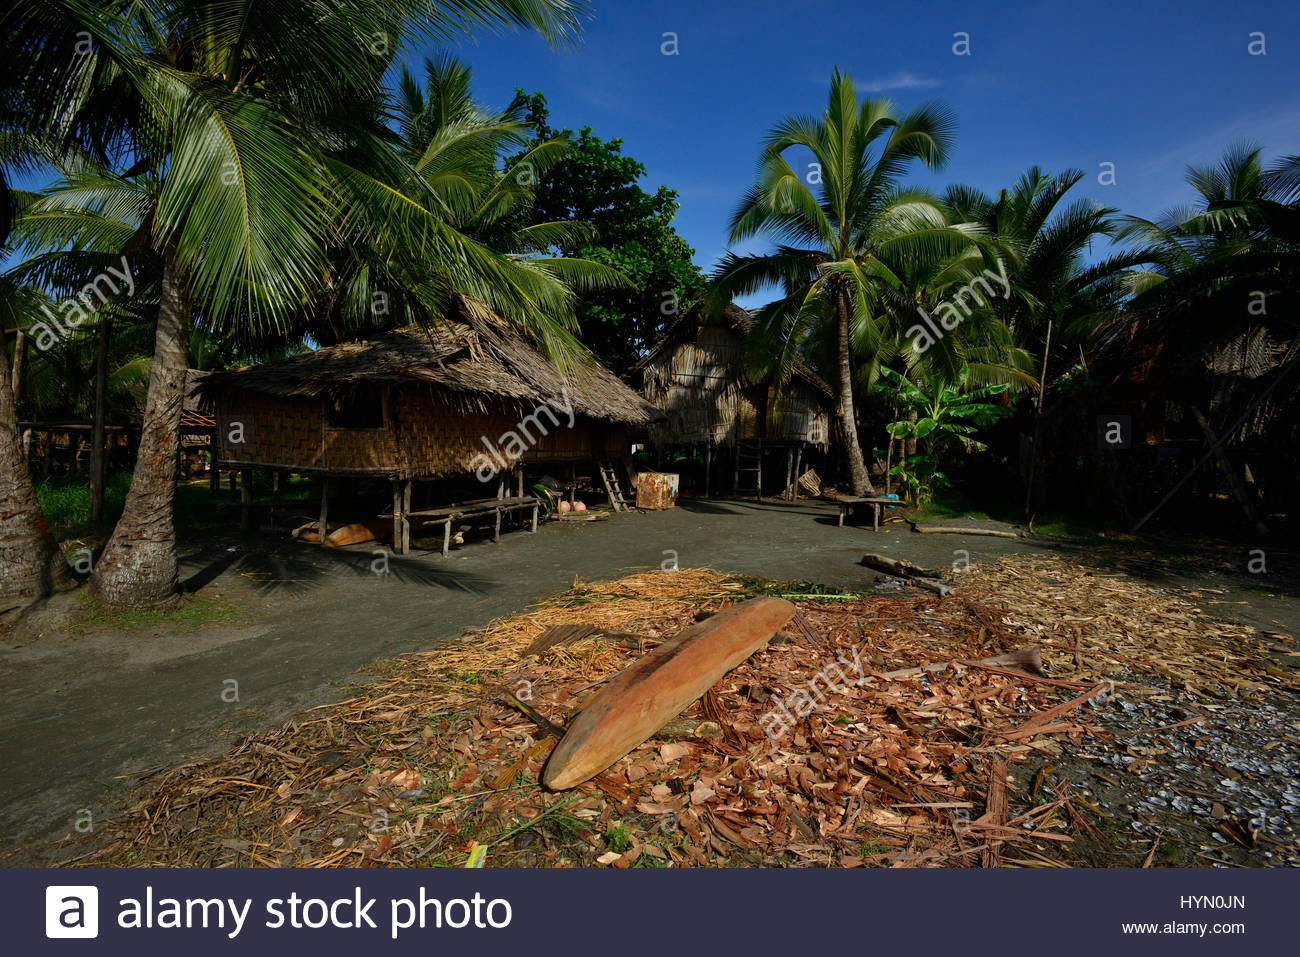 A canoe carved out of wood and a hut surrounded by palm trees. - Stock Image